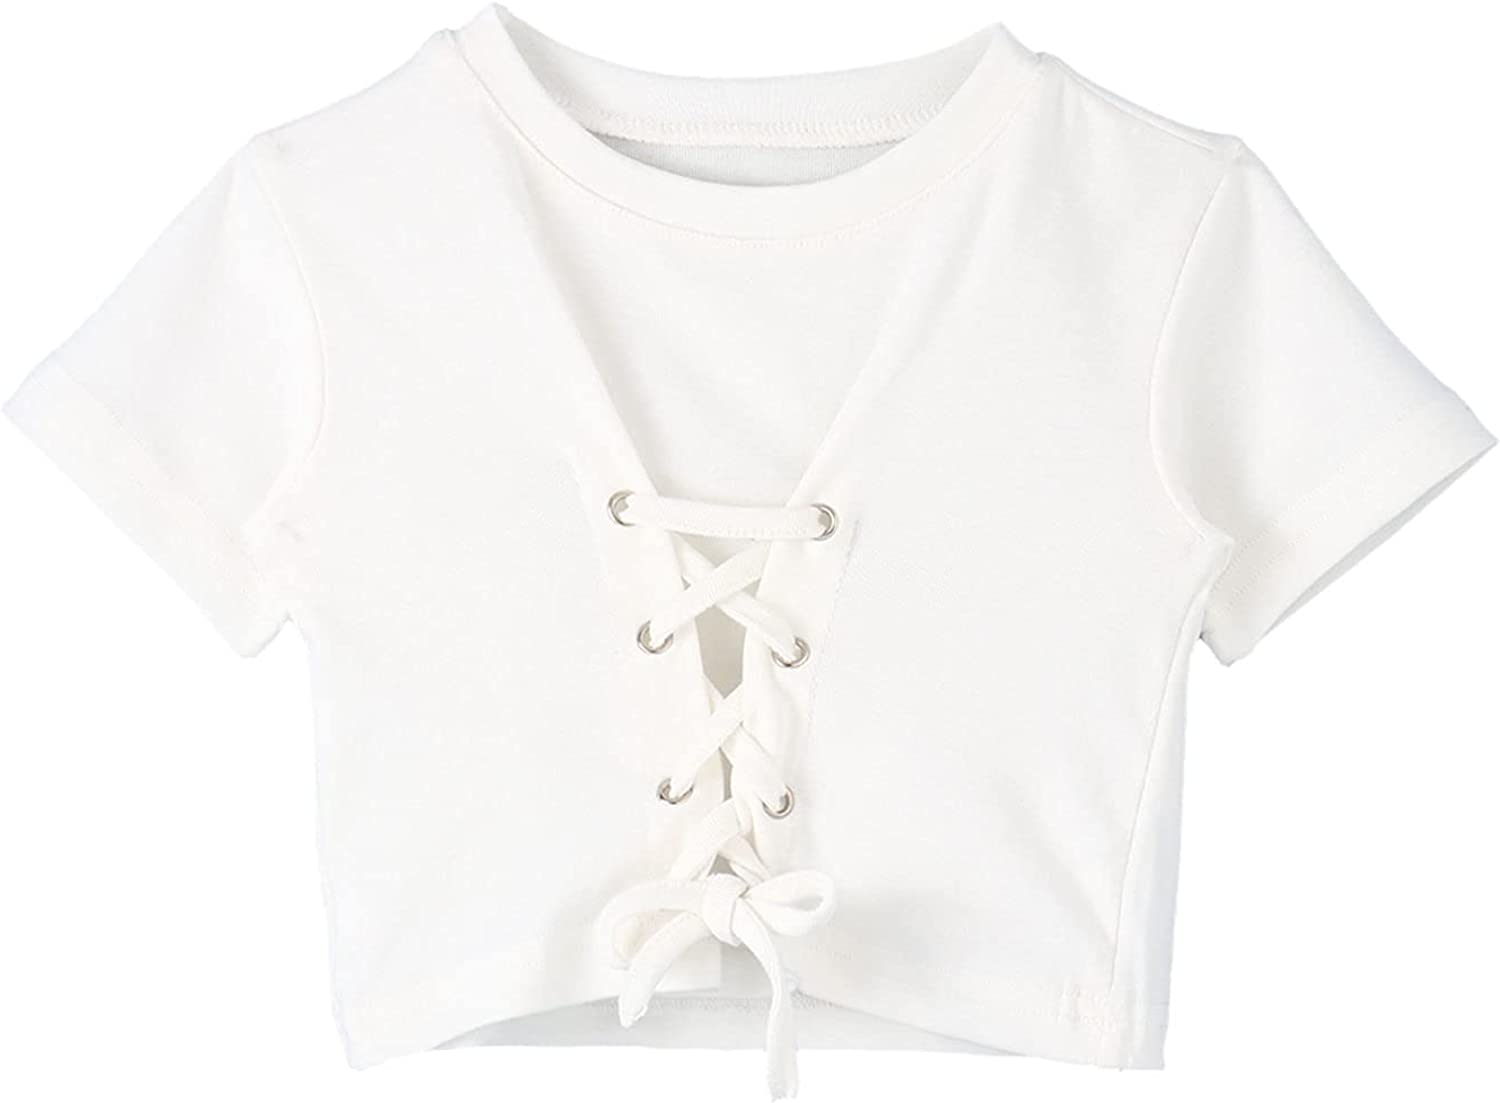 Agoky Kids Girls Cotton Cross Straps Crop Tee Shirts Plain Color Slim Short Sleeve T-Shirt Casual Athletic Sport Top